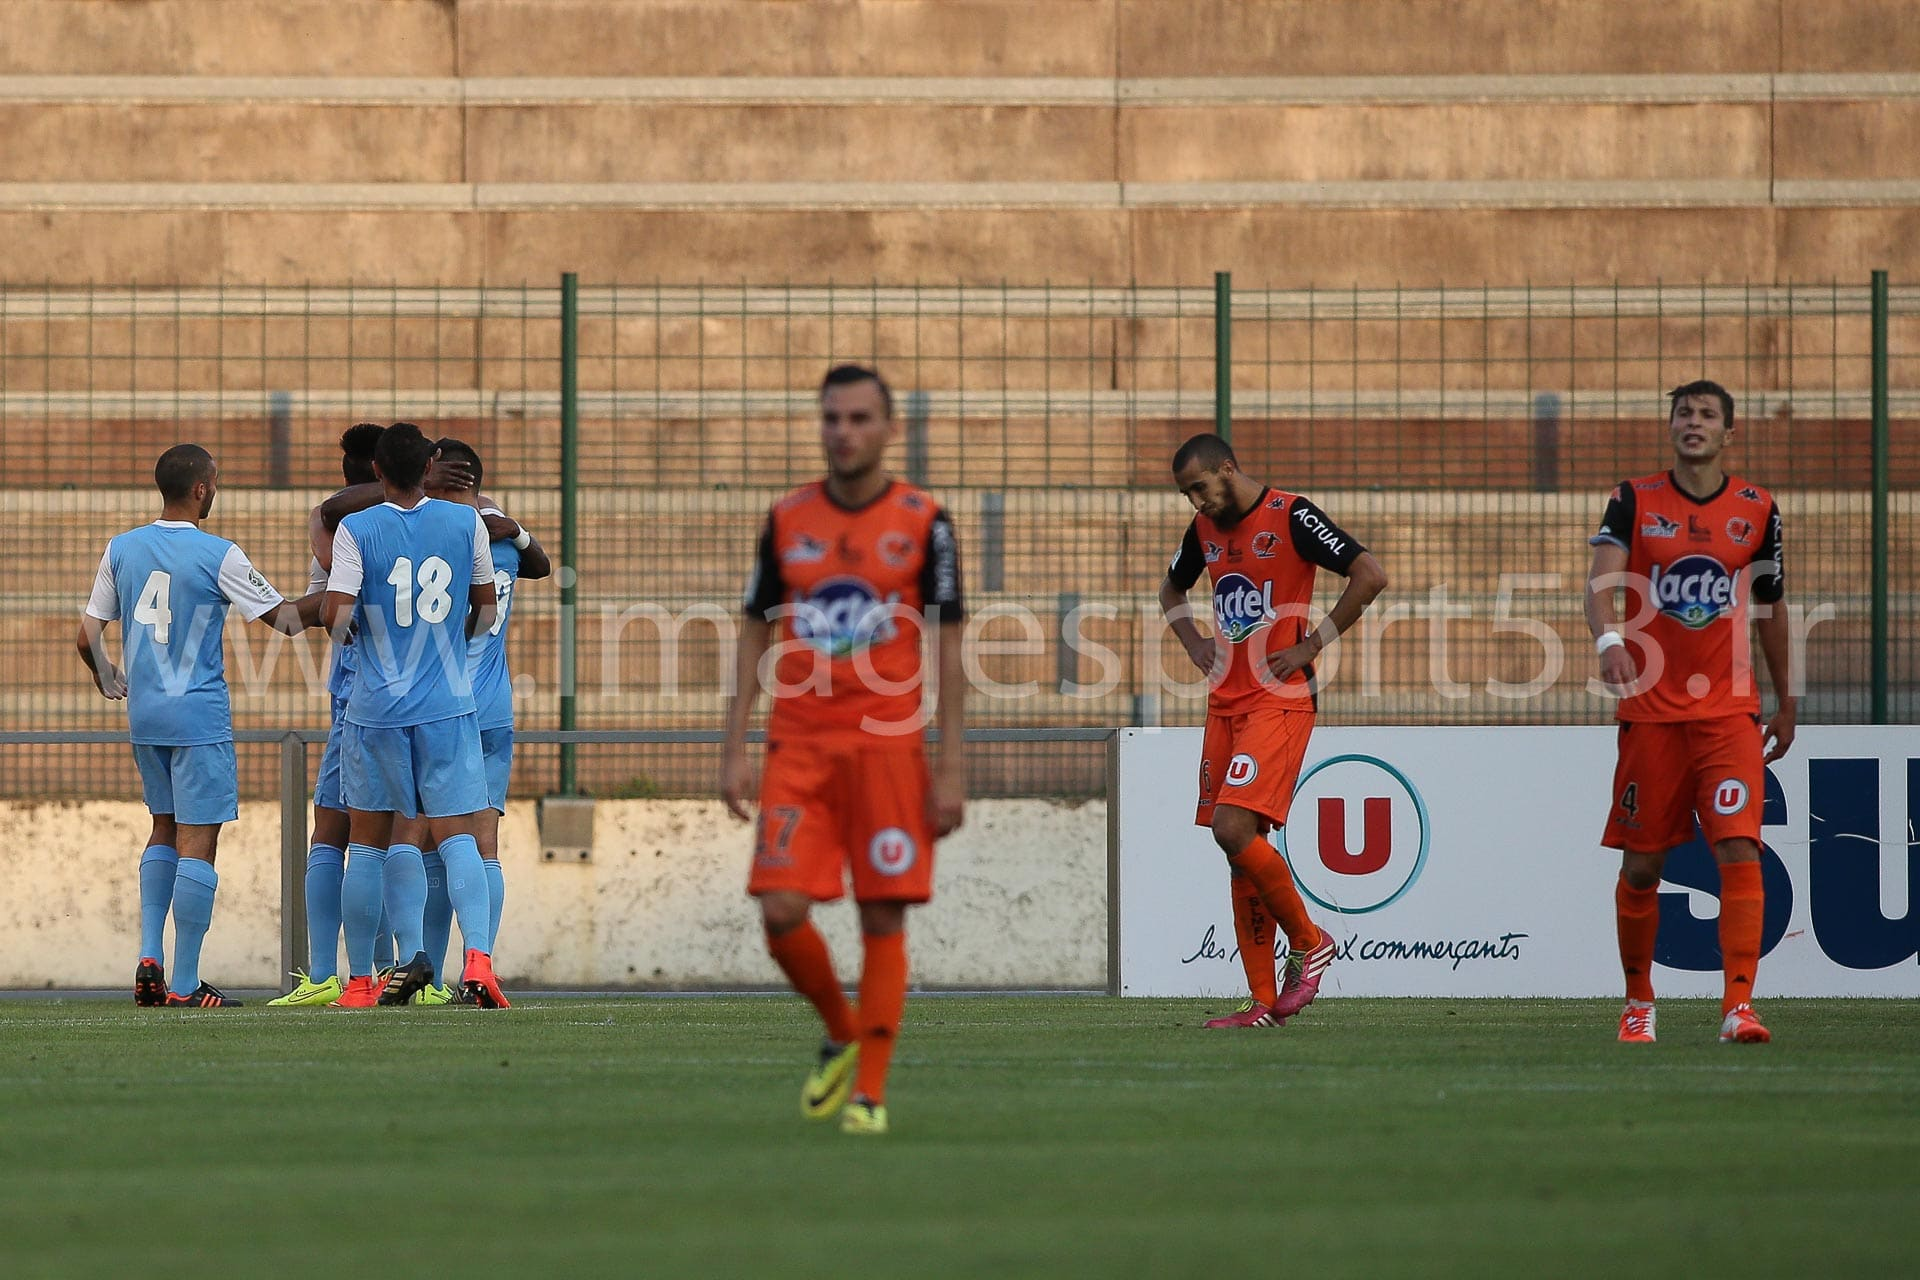 NG-Ligue2-1415-Amical6_Tours-Laval_20